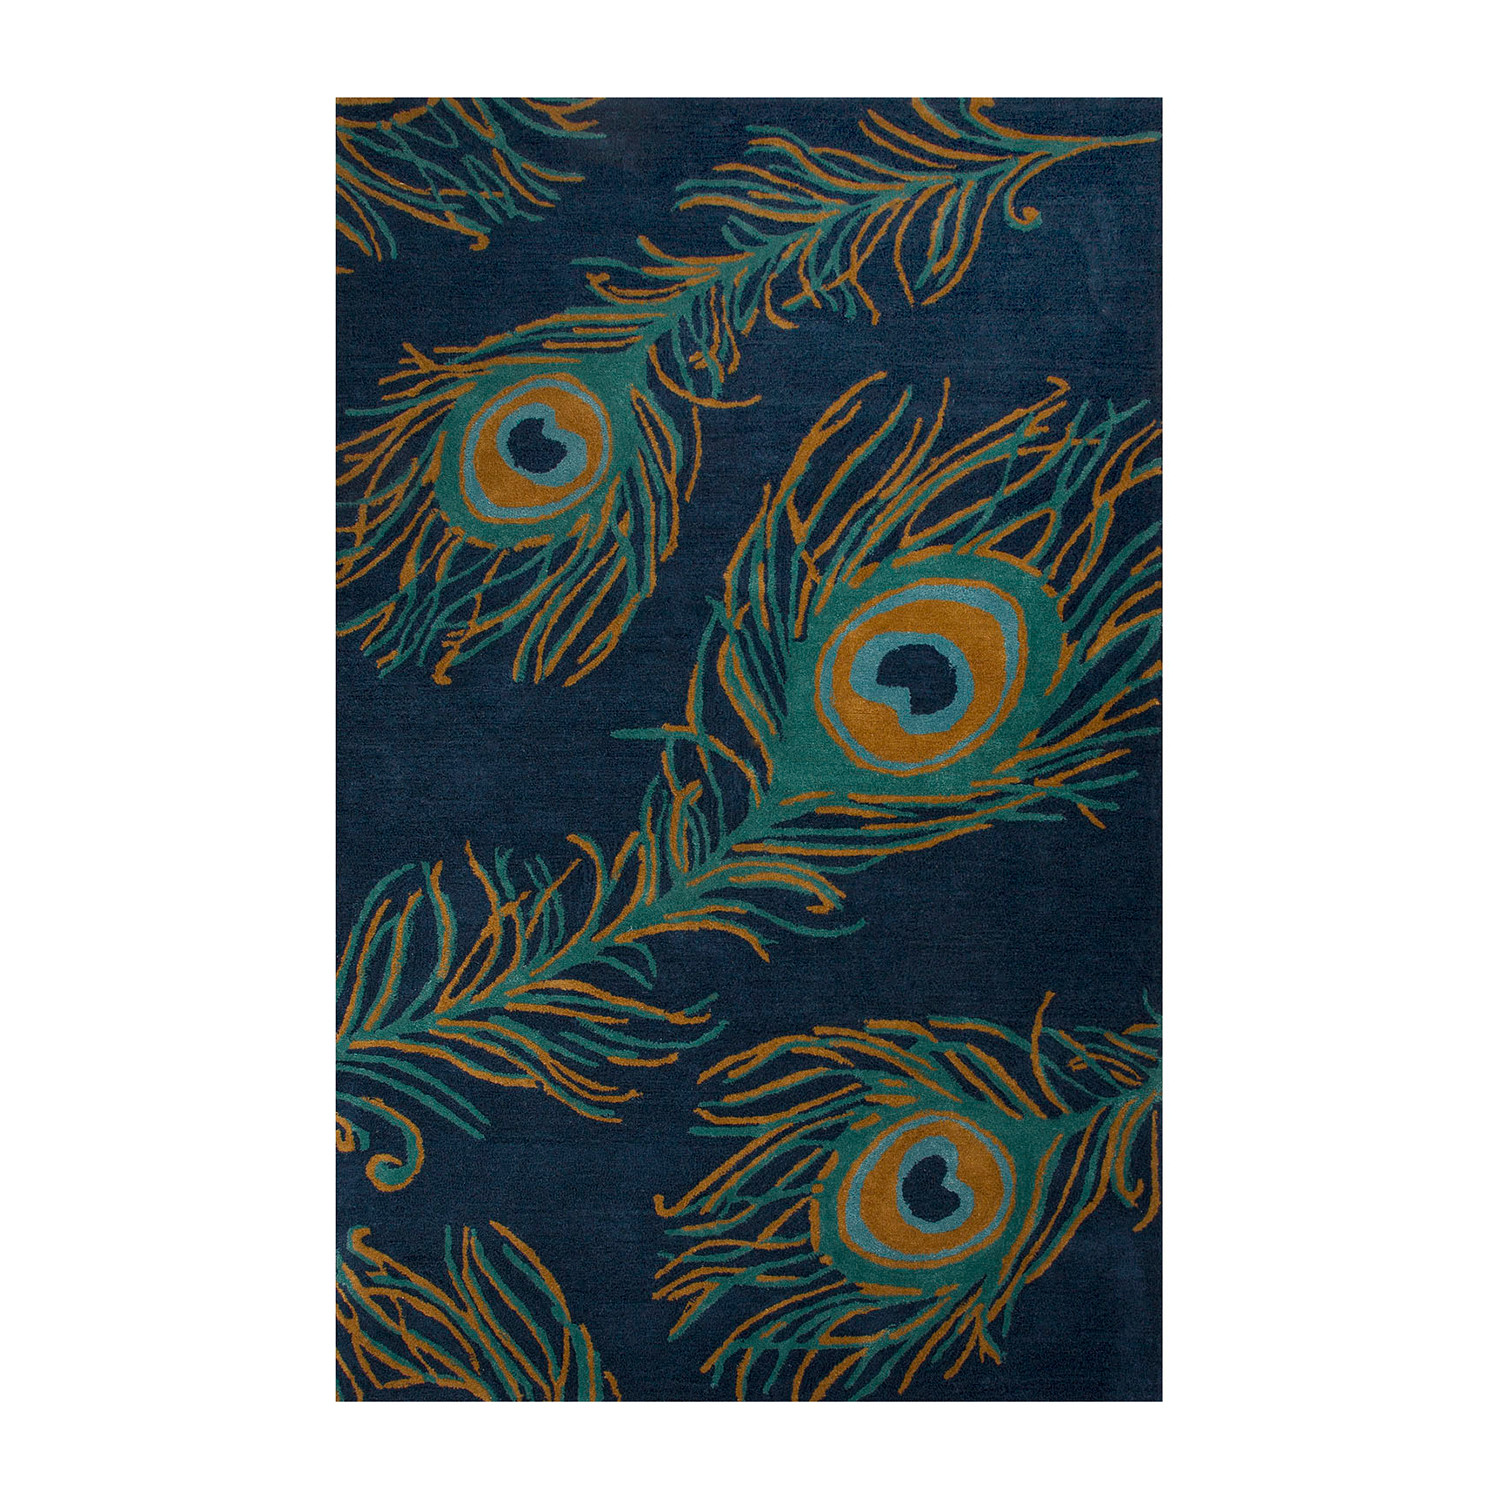 Modern Animal Print Feathers Wool Viscose Area Rug // Blue (2'L X 3'W)